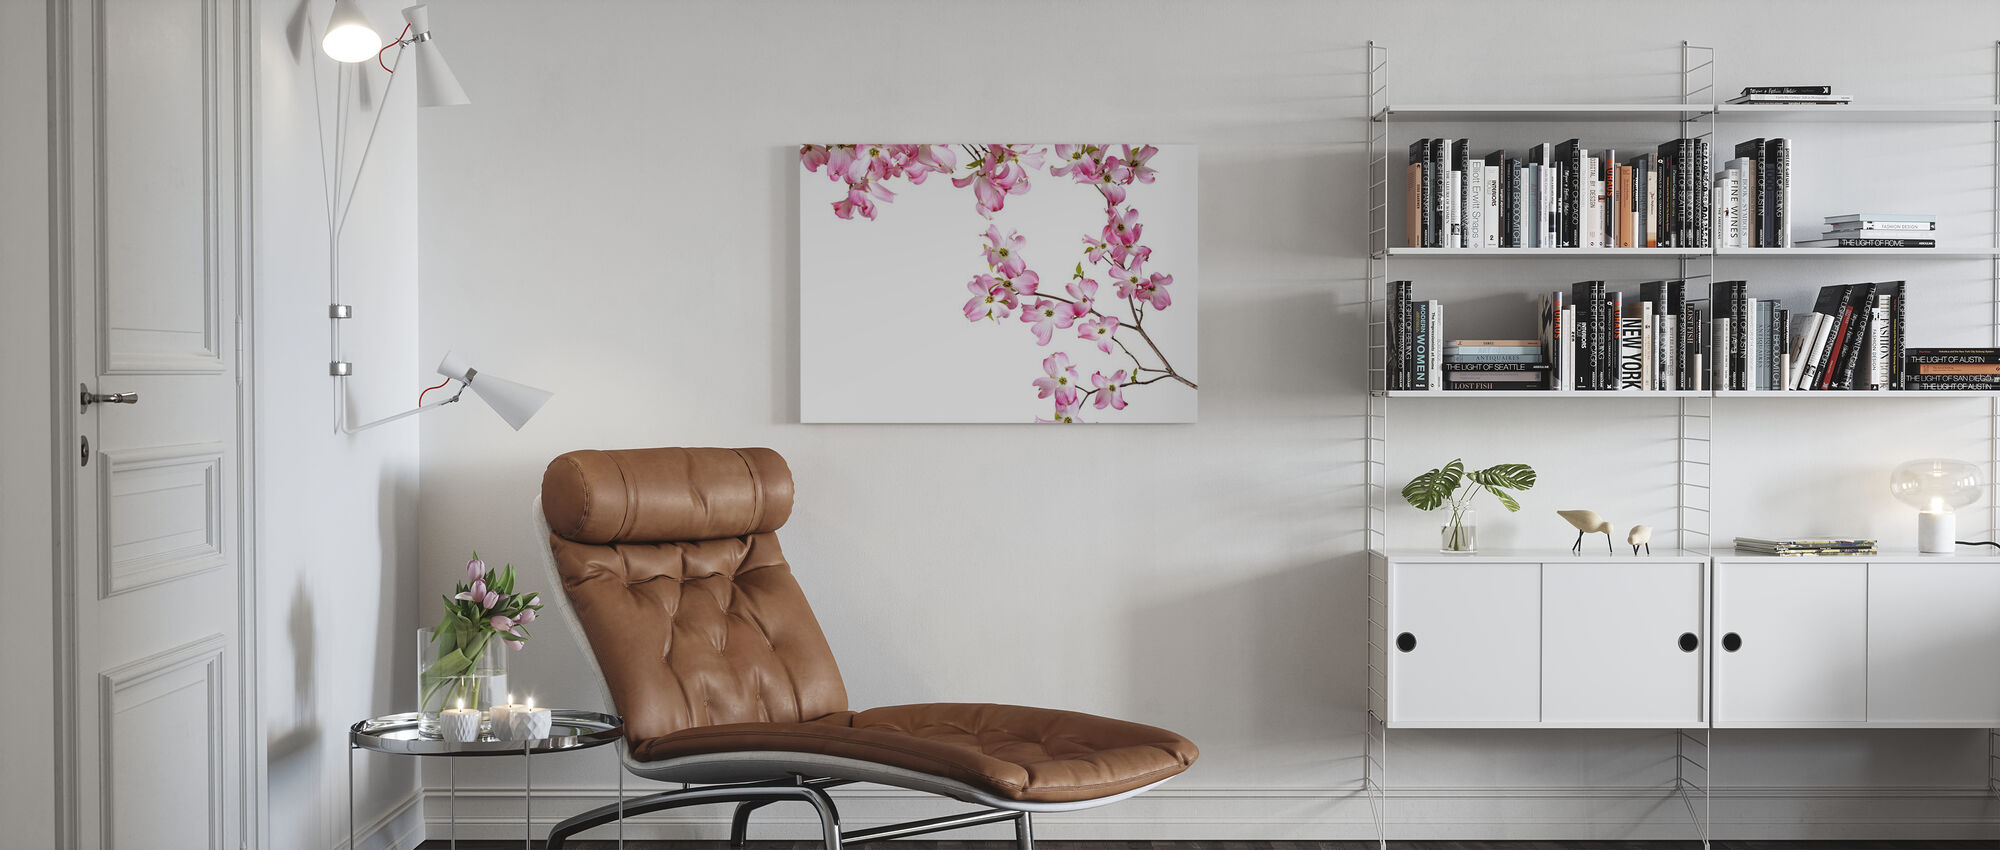 Striped Orchid - Canvas print - Living Room